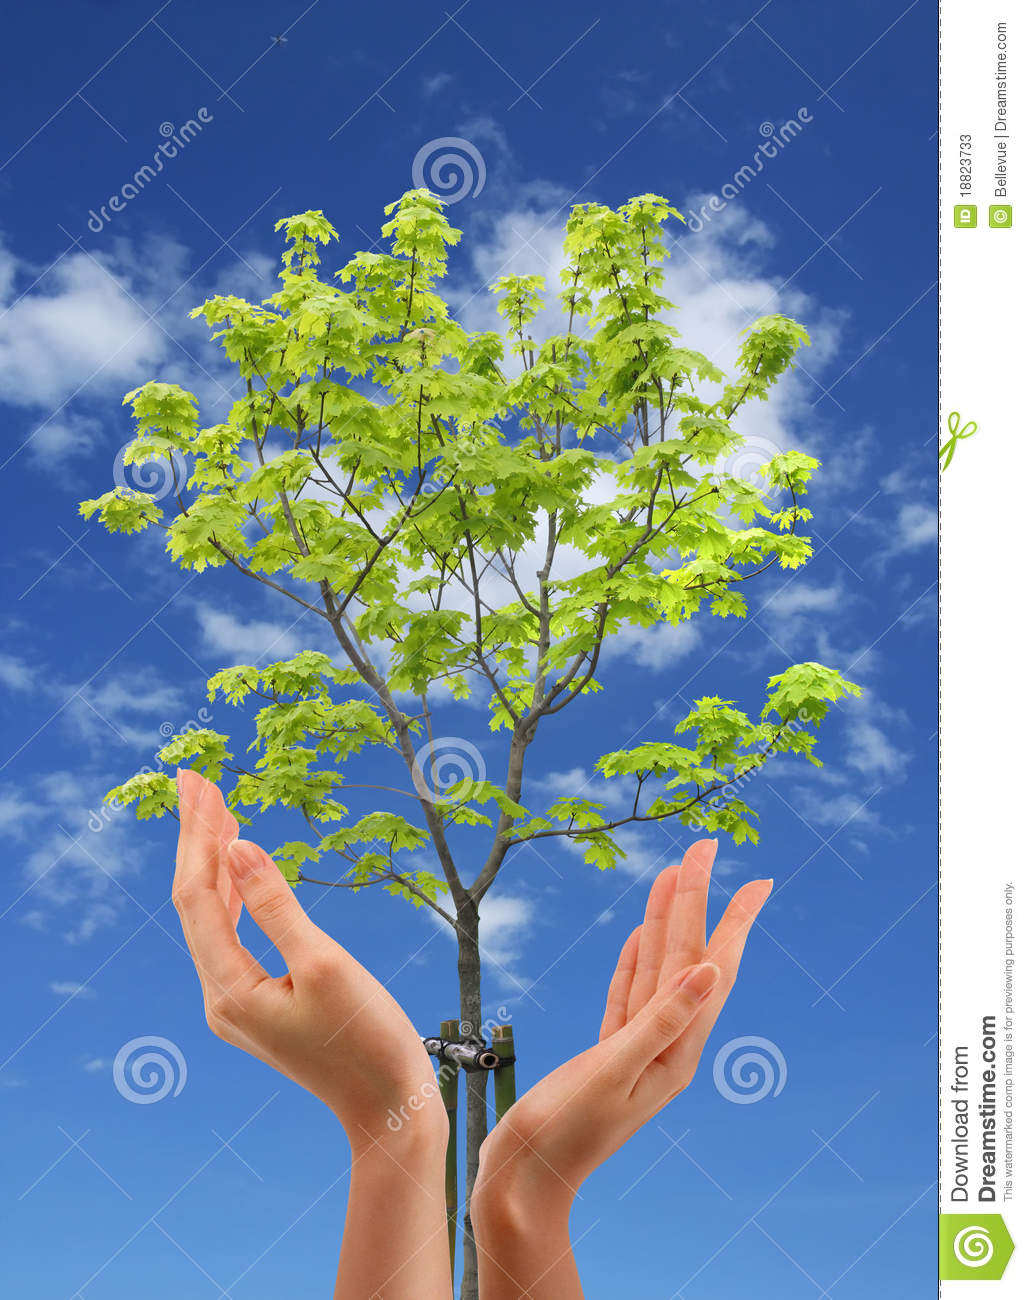 protect the nature essay Esė it is important for everybody to protect nature our planet is facing many problems such as air pollution, hole in the ozone layer, water shortages or even global warming.